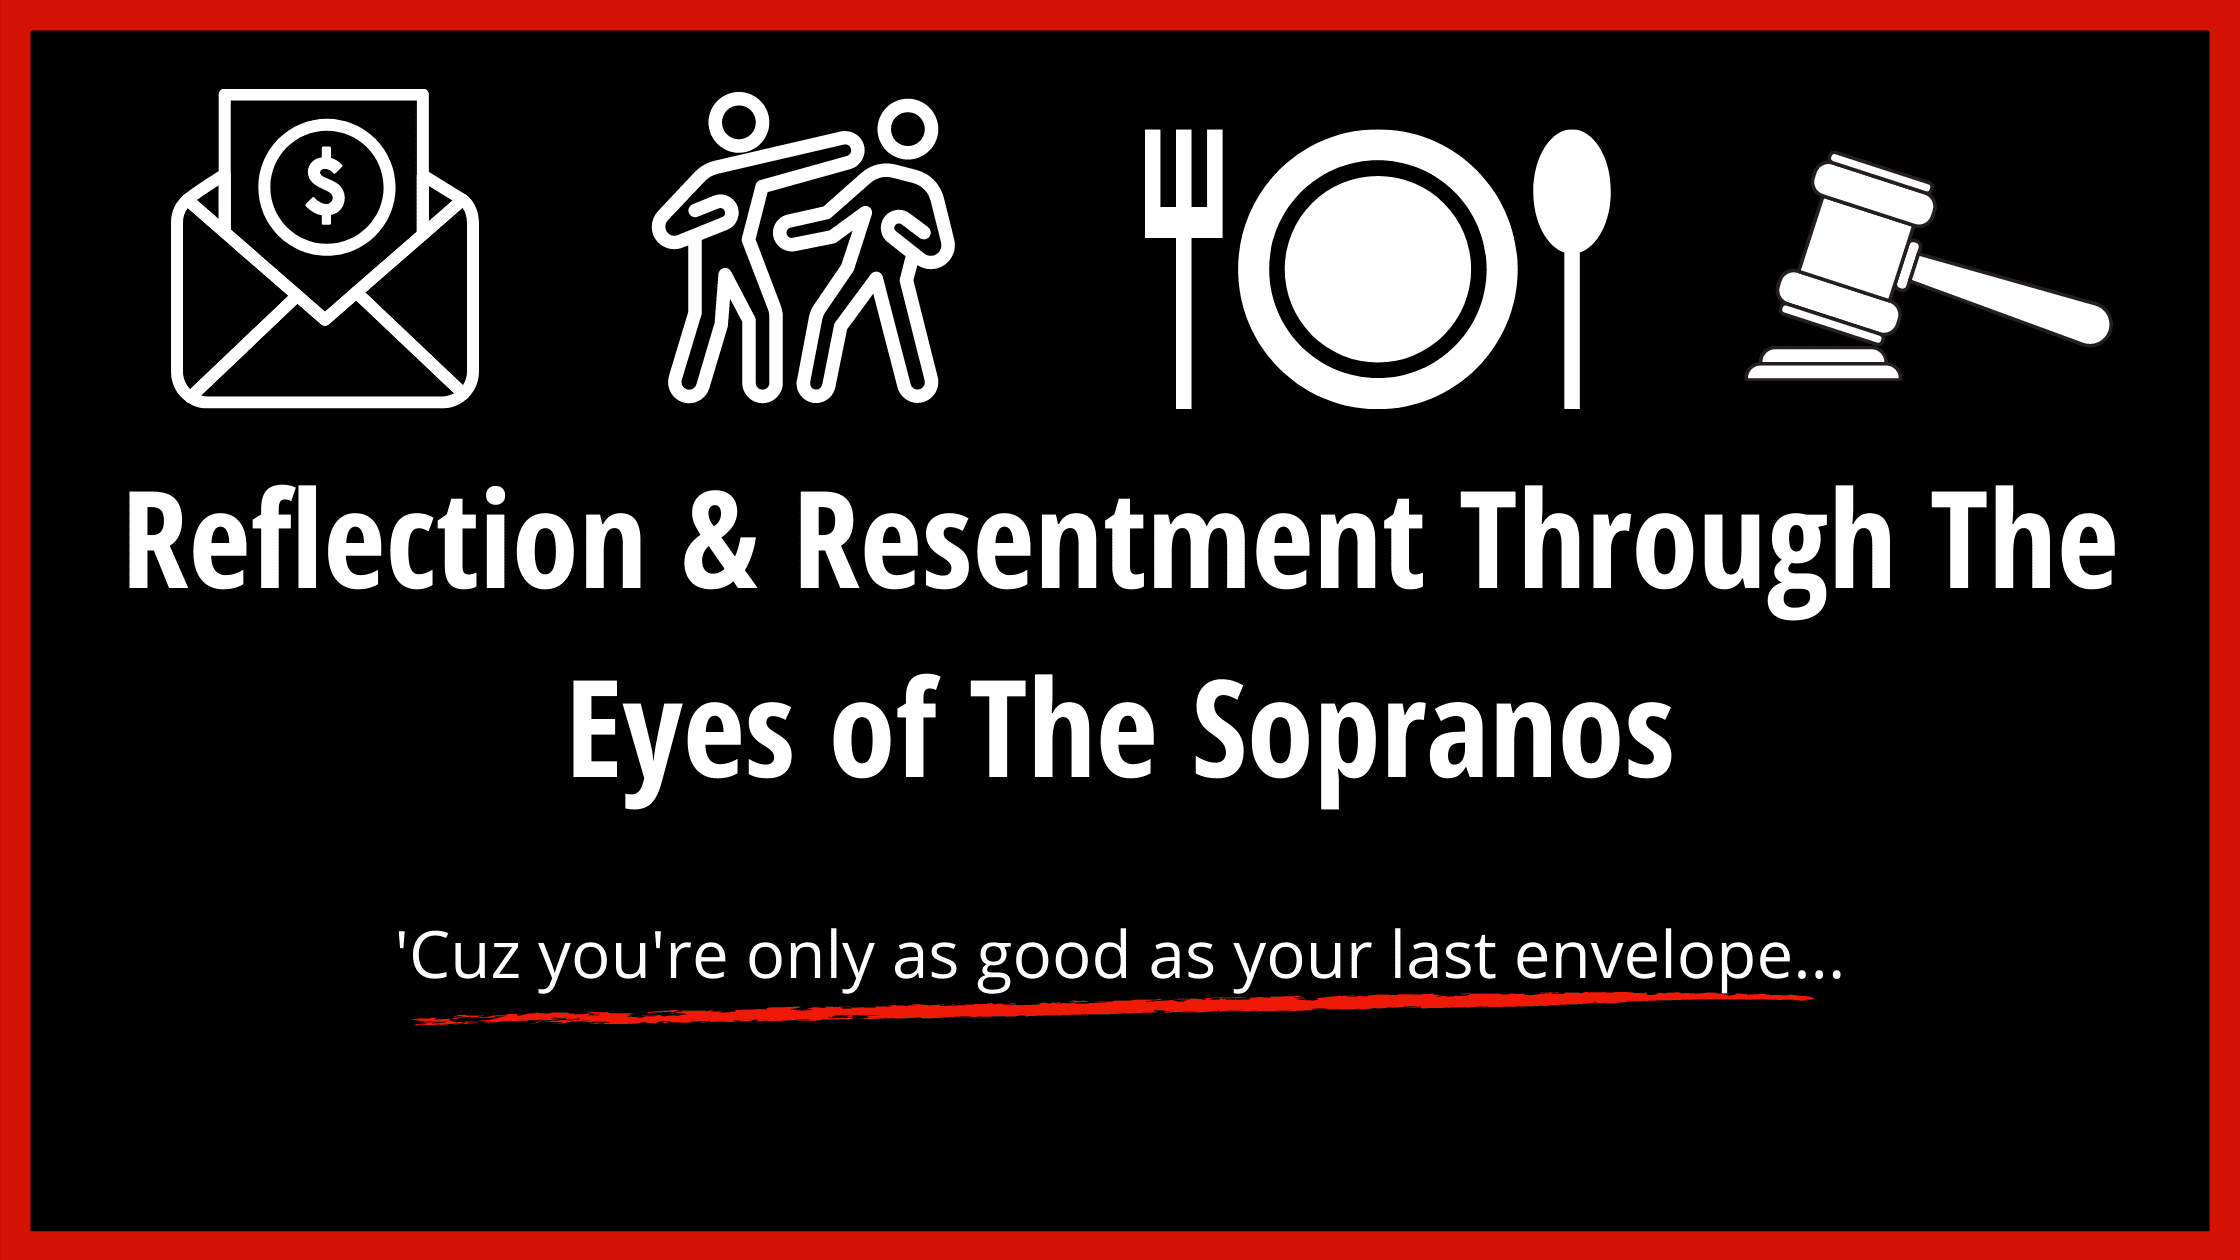 The Sopranos Reflections & Resentment